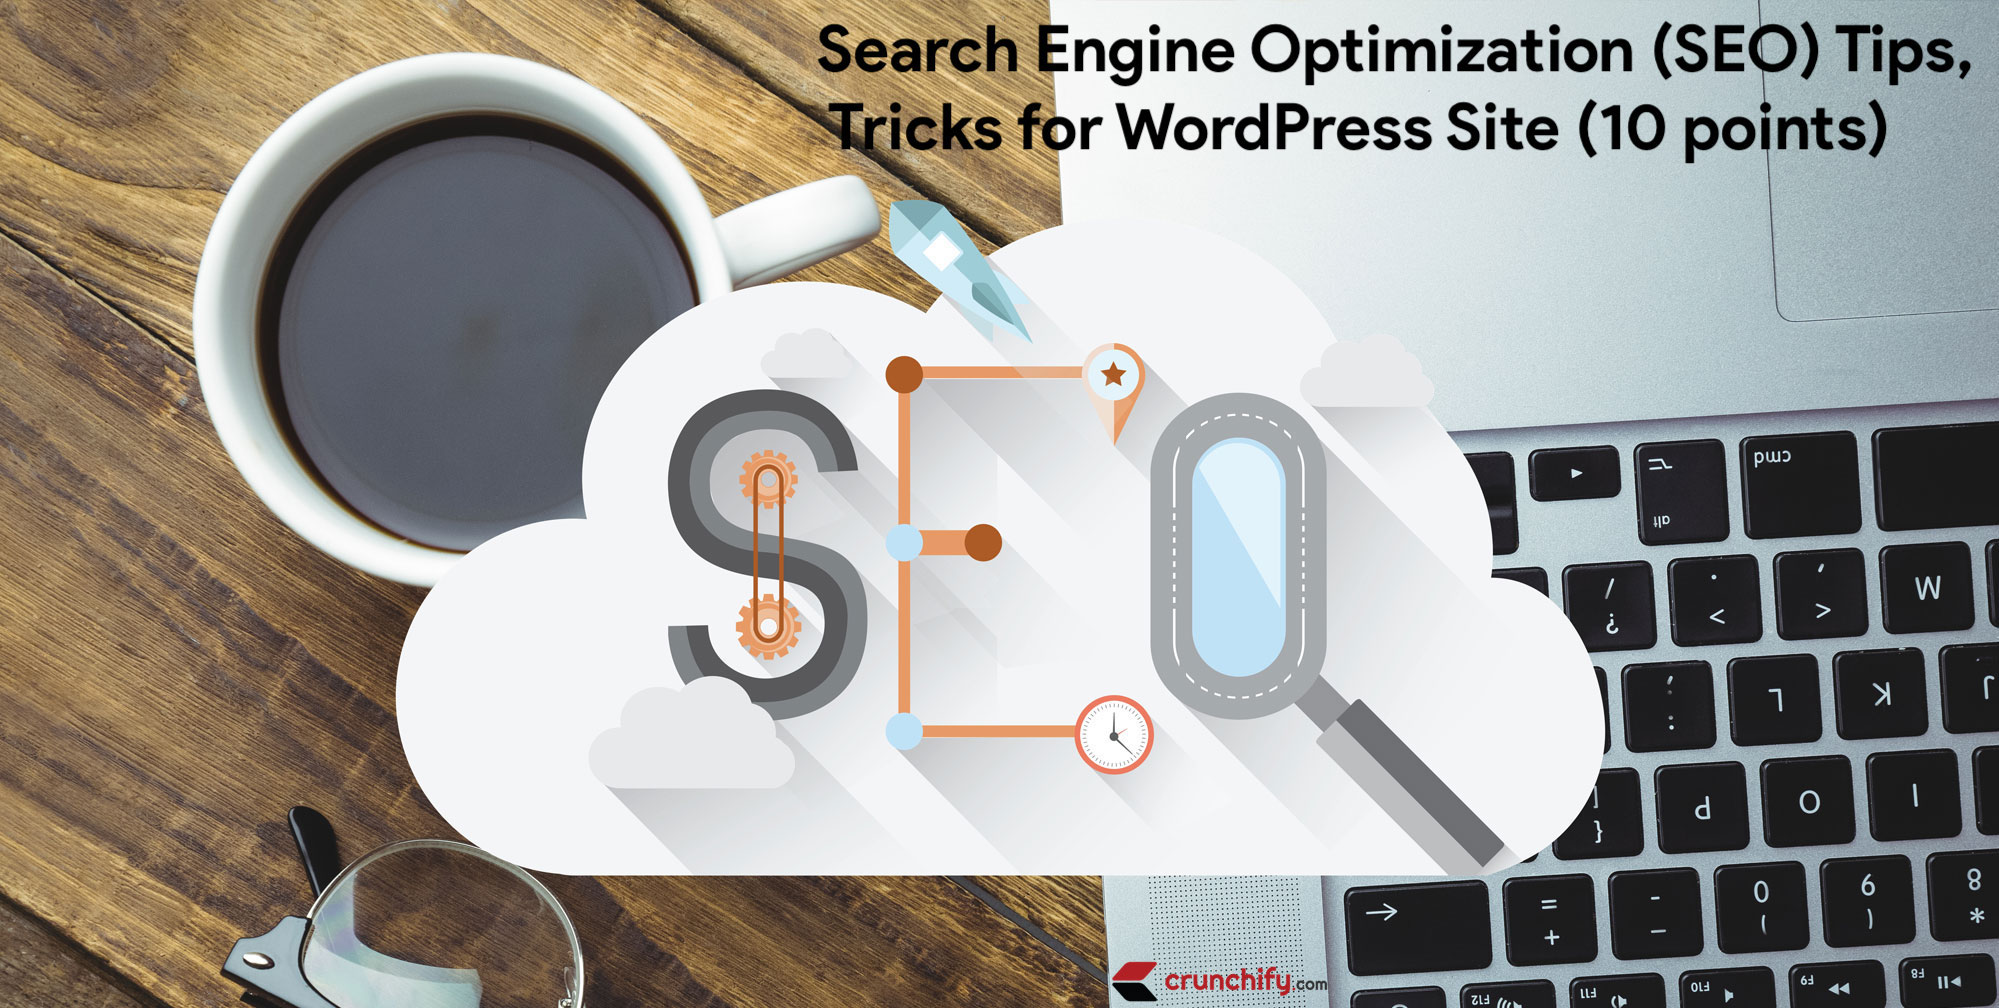 Search Engine Optimization (SEO) Tips and Tricks for WordPress Site – 10 points [2020 Edition]